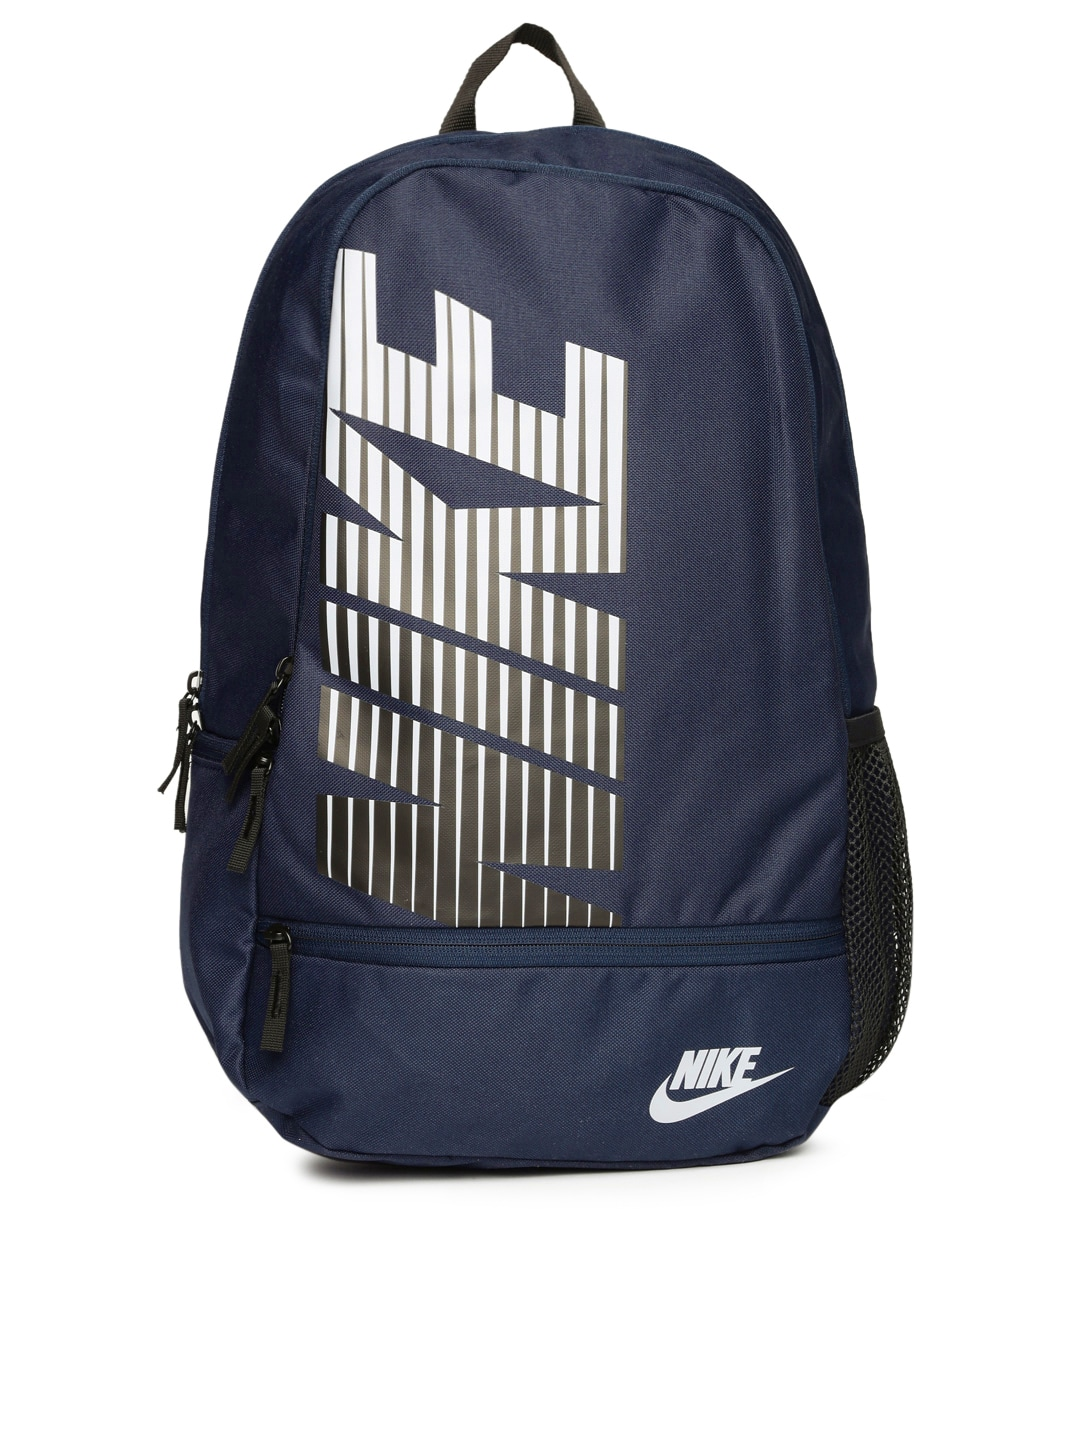 80534df37f1 ... Nike Bags - Buy Nike Bag for Men